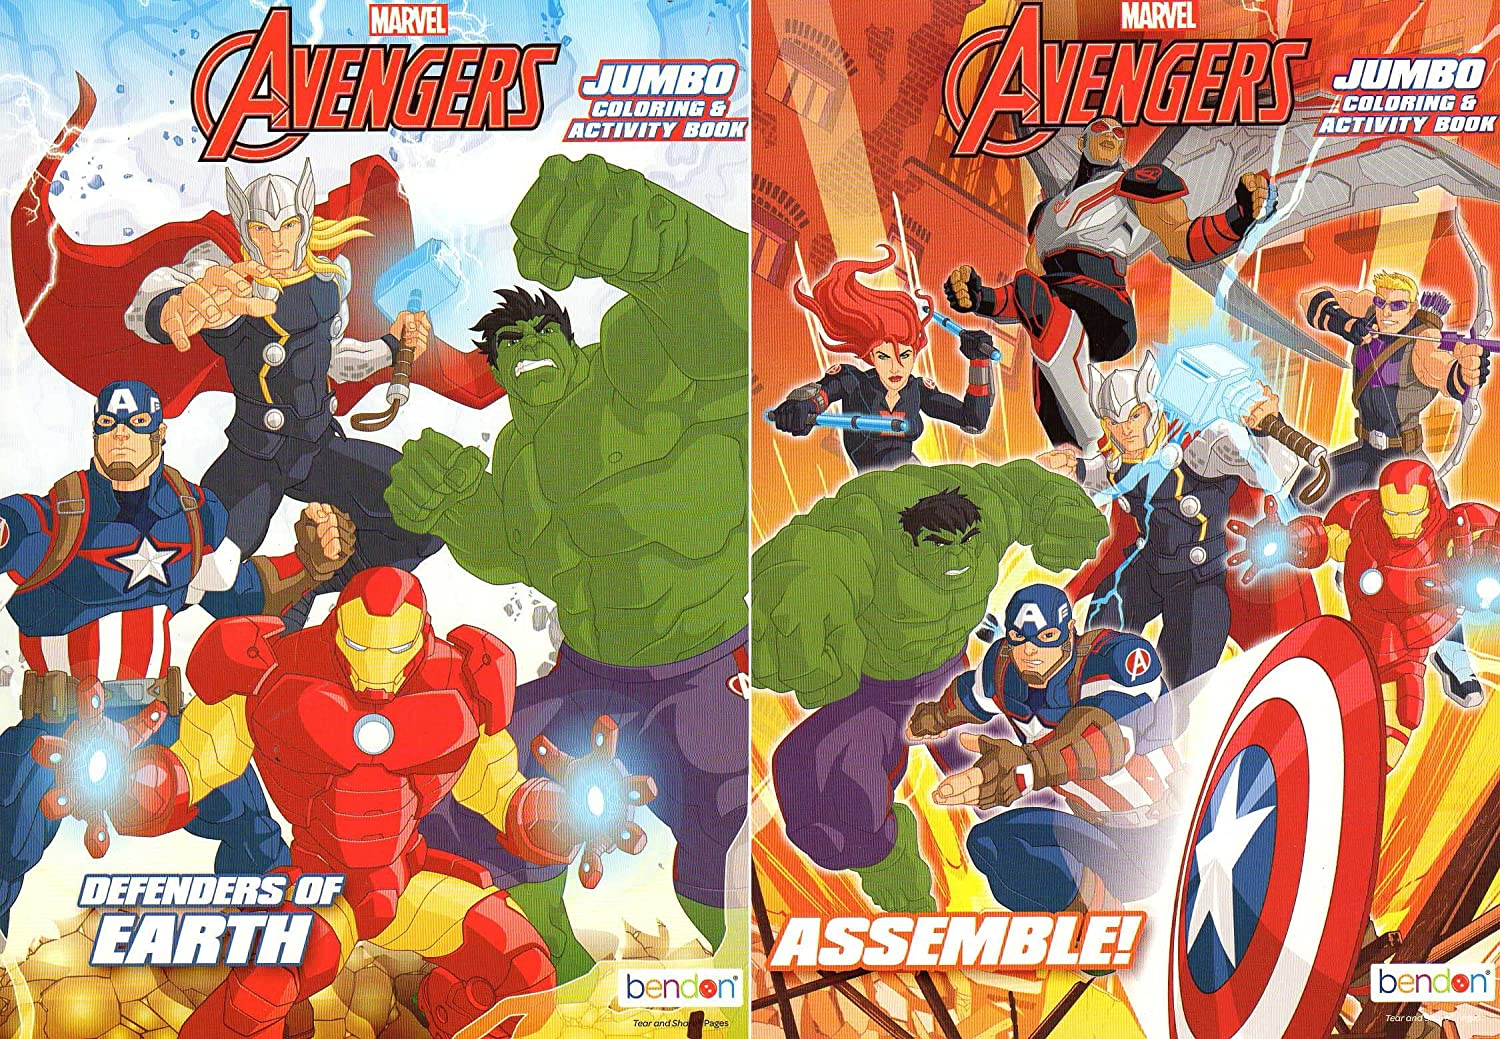 Amazon.com: Marvel Avengers Jumbo Coloring and Activity Book ...